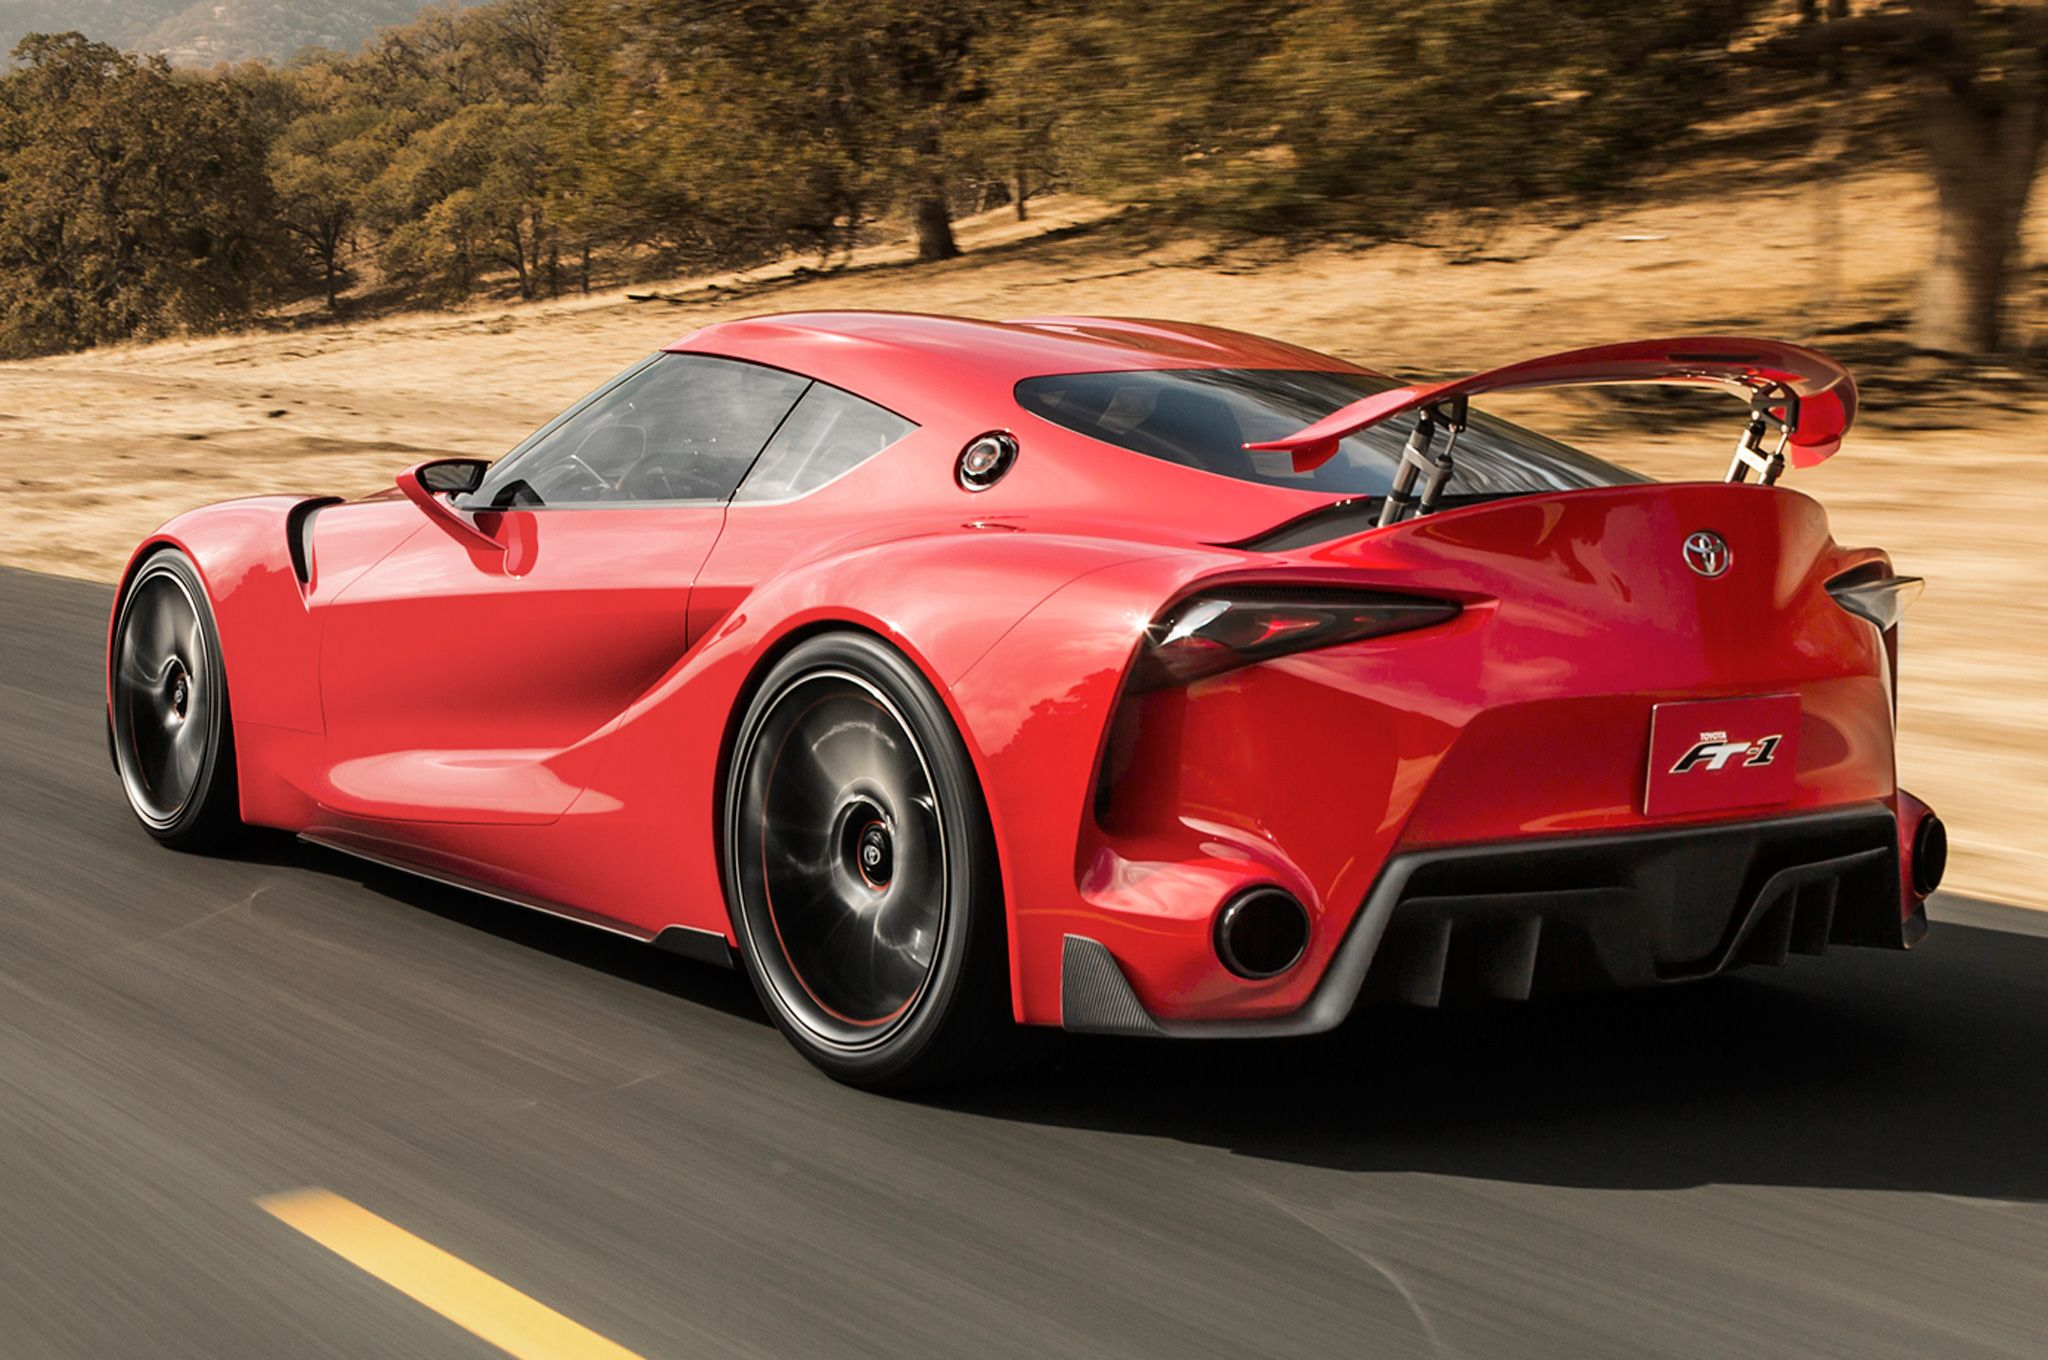 2014 Toyota FT 1 Rear View Exotic Cars Pinterest